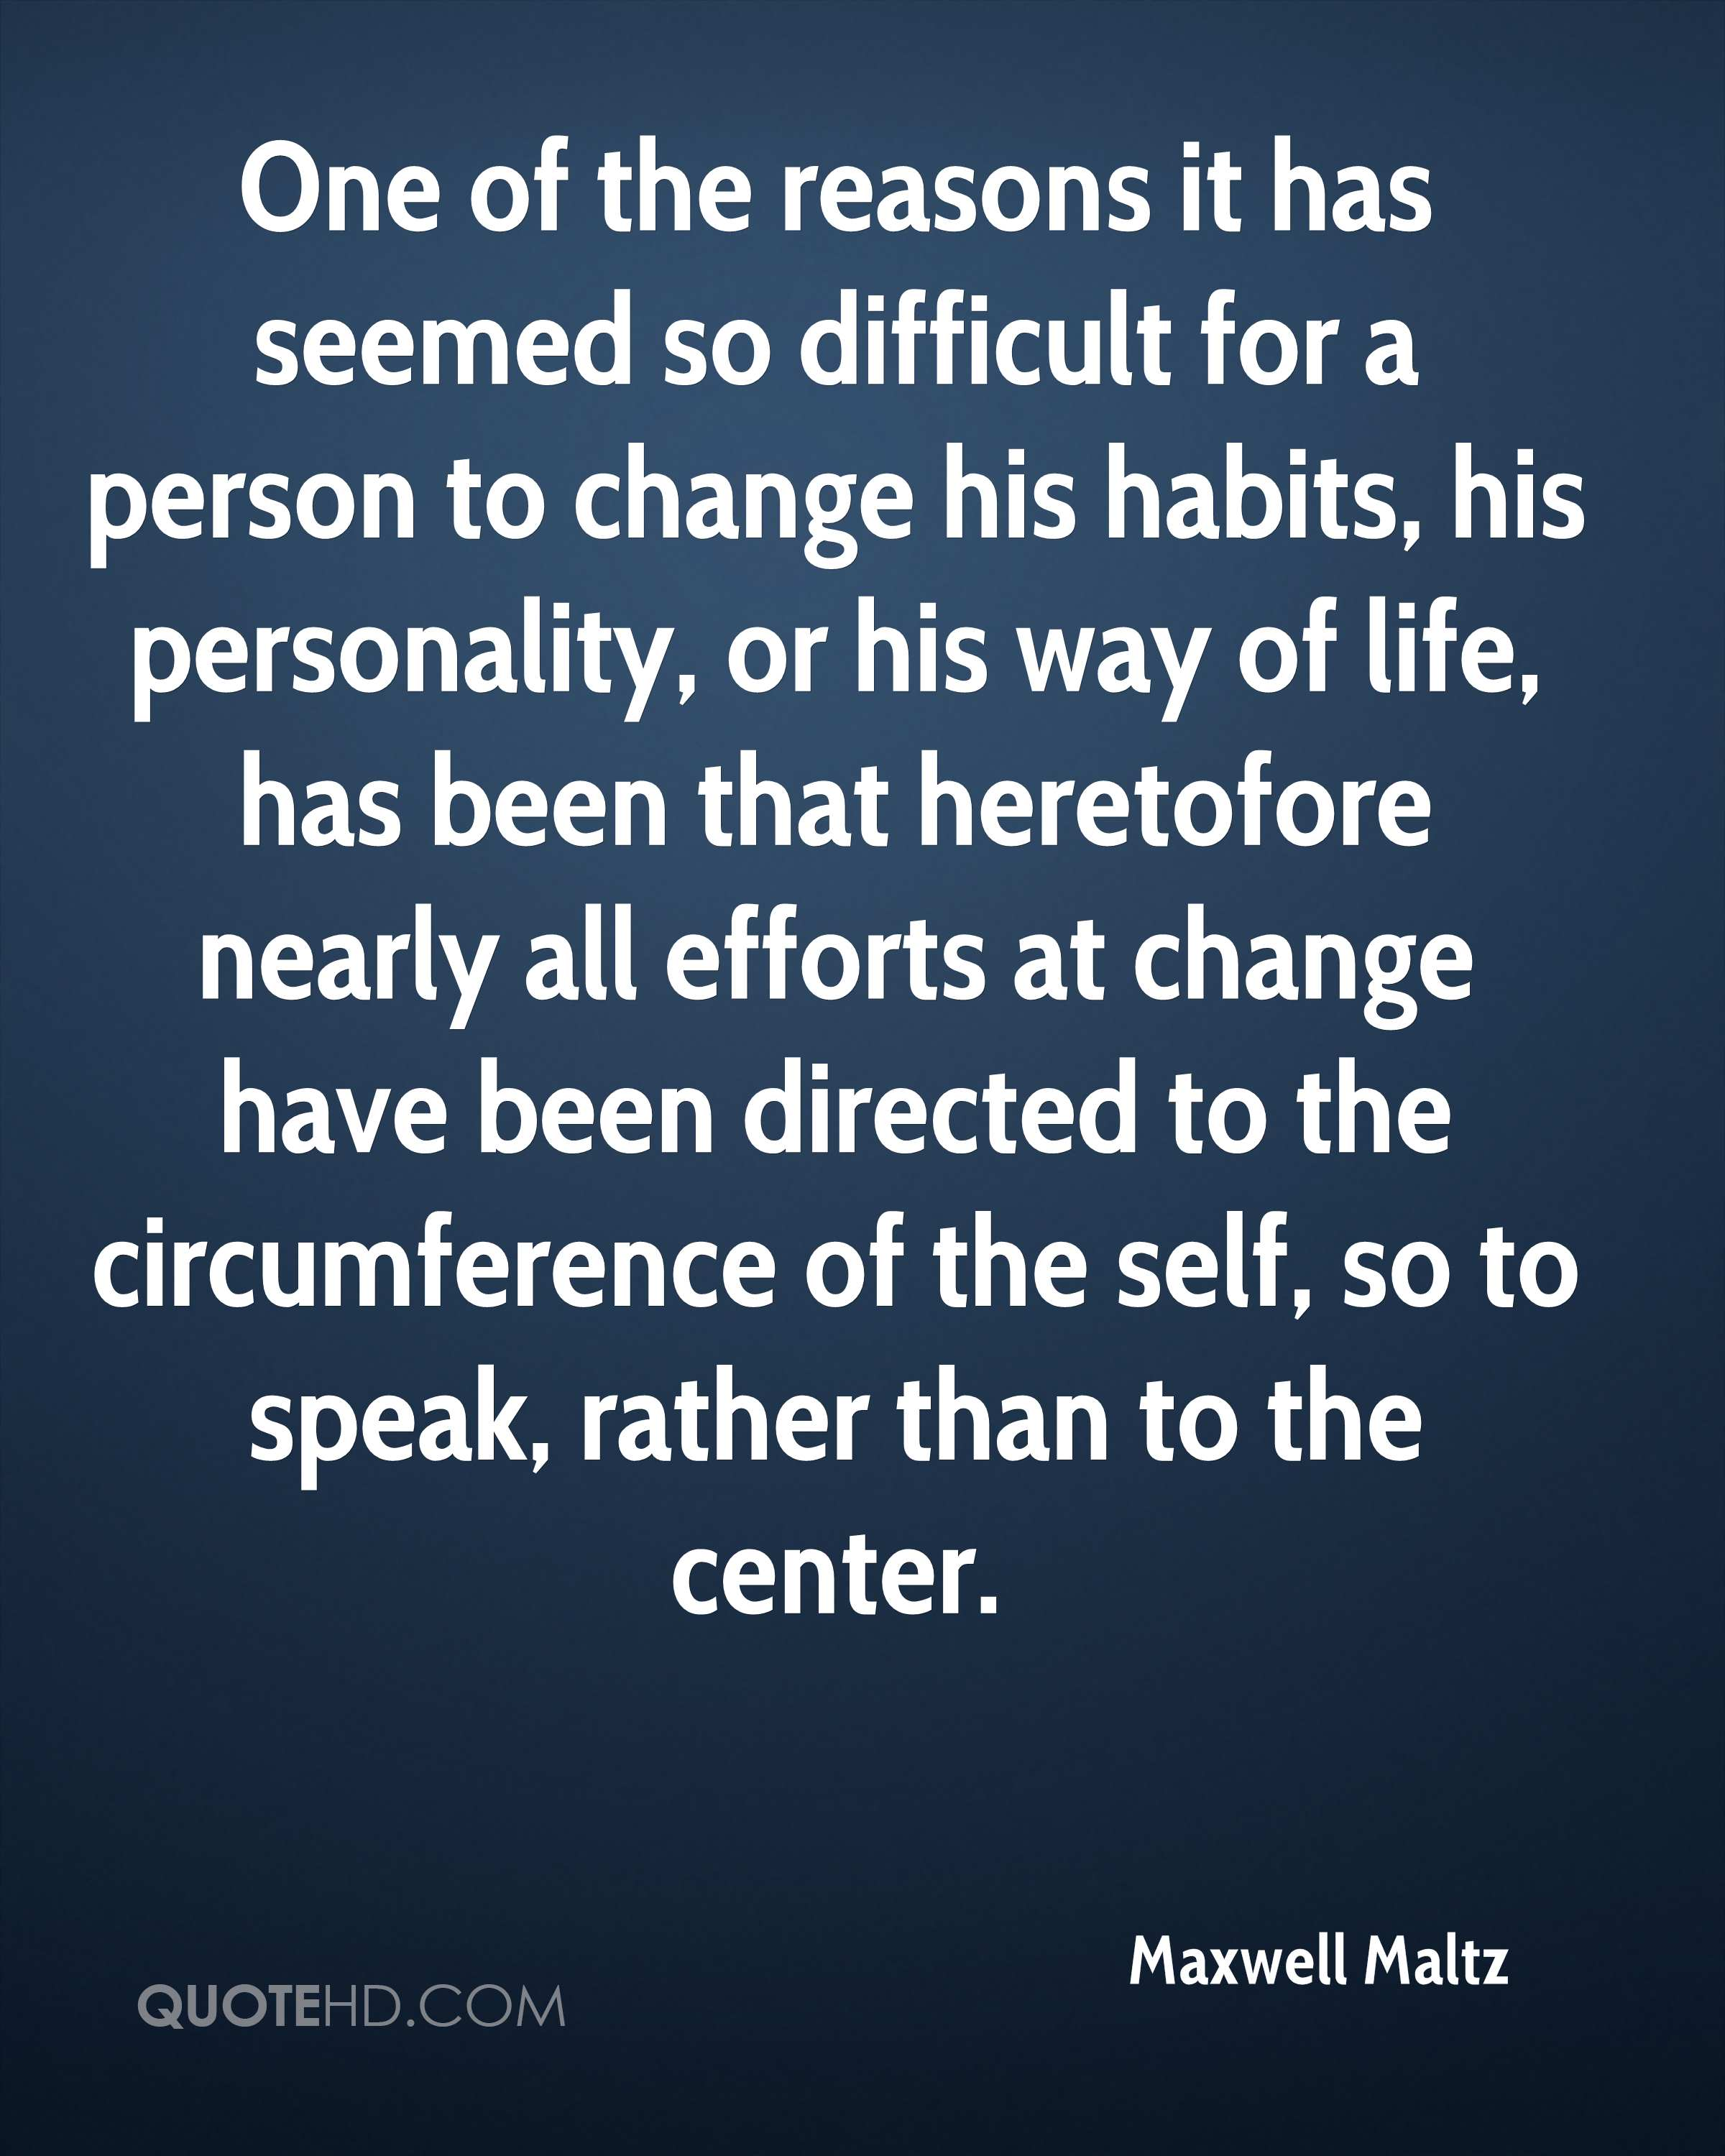 One of the reasons it has seemed so difficult for a person to change his habits, his personality, or his way of life, has been that heretofore nearly all efforts at change have been directed to the circumference of the self, so to speak, rather than to the center.